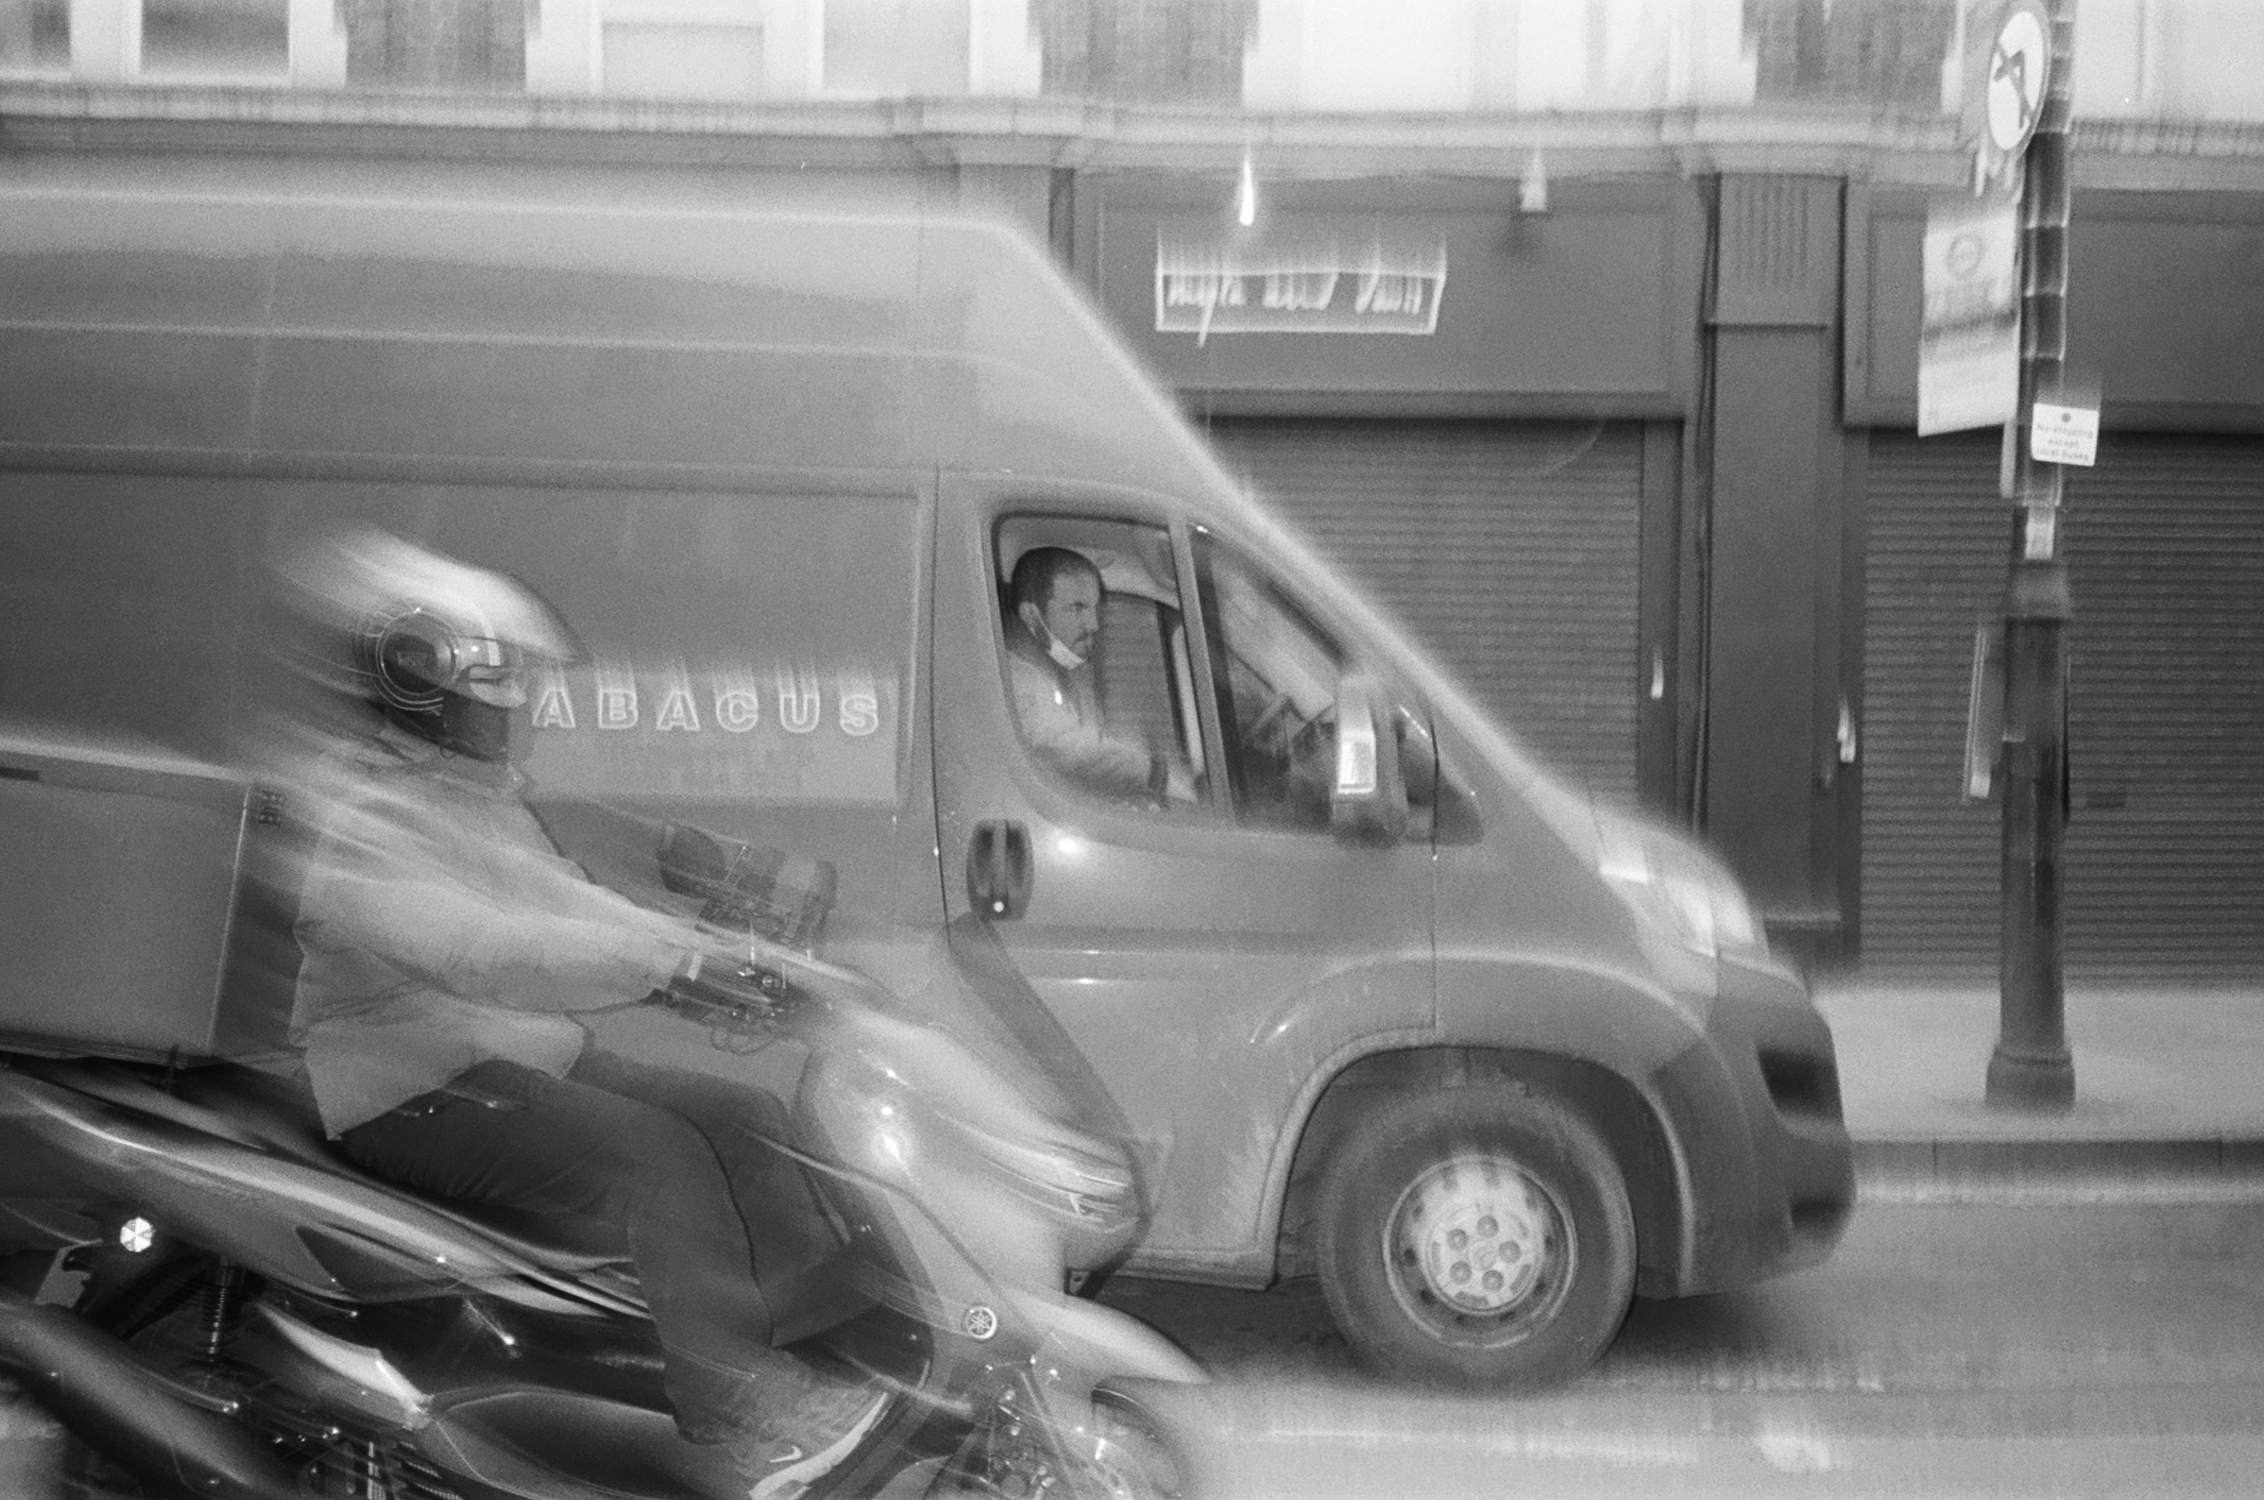 Blurred scooter and van (Pic: Rob Andrews)